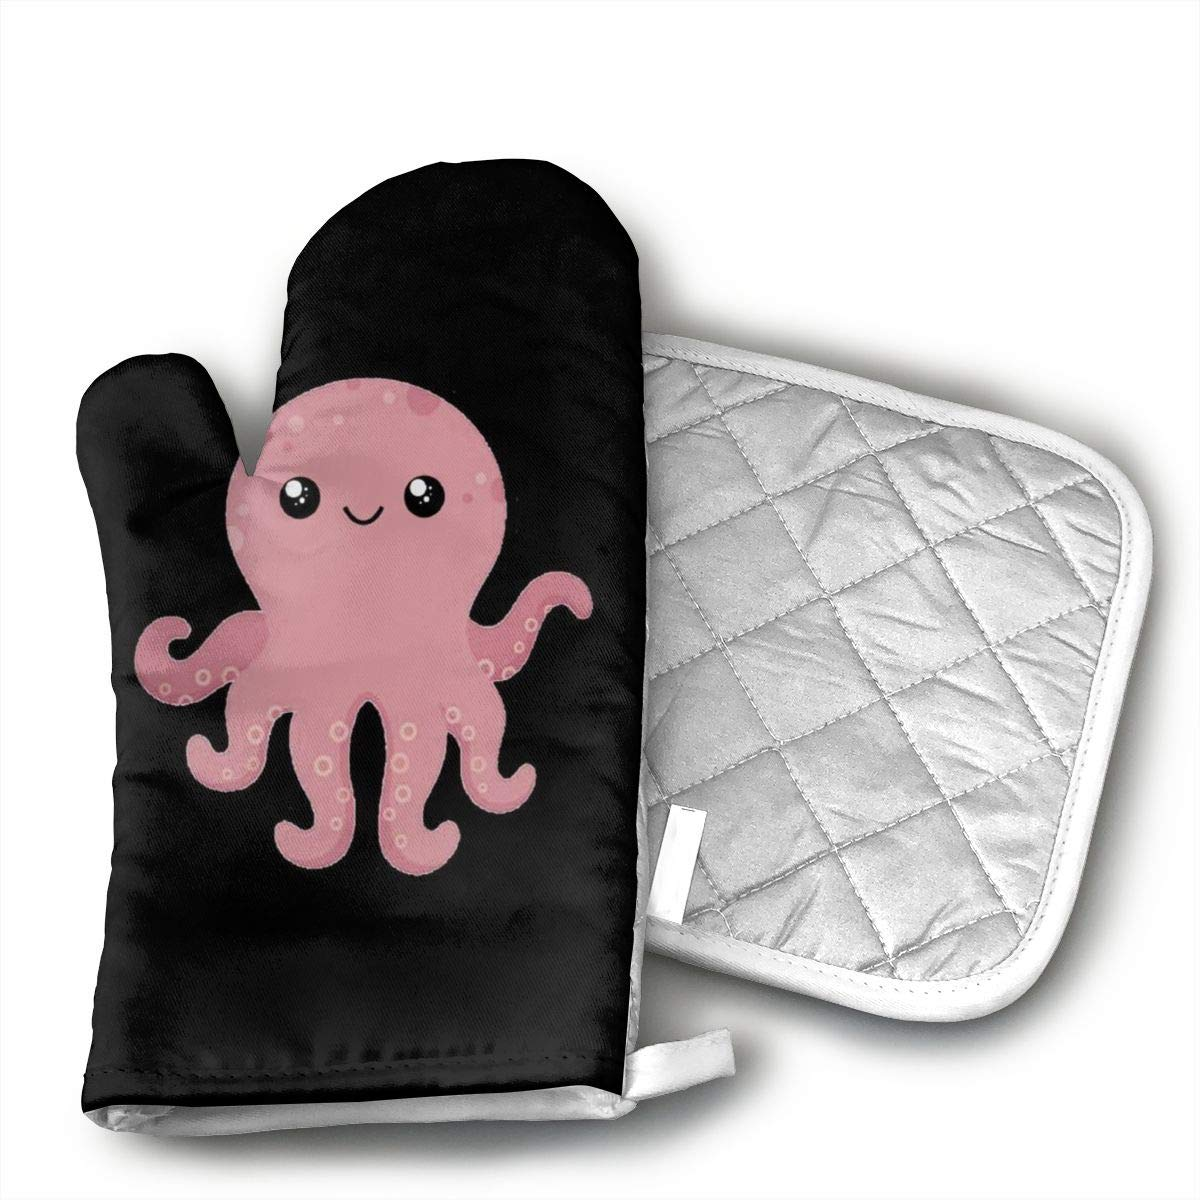 UYRHFS Pink Octopus Printed Oven Mitts and Pot Holder Kitchen Set with, Heat Resistant, Oven Gloves and Pot Holders 2pcs Set for BBQ Cooking Baking